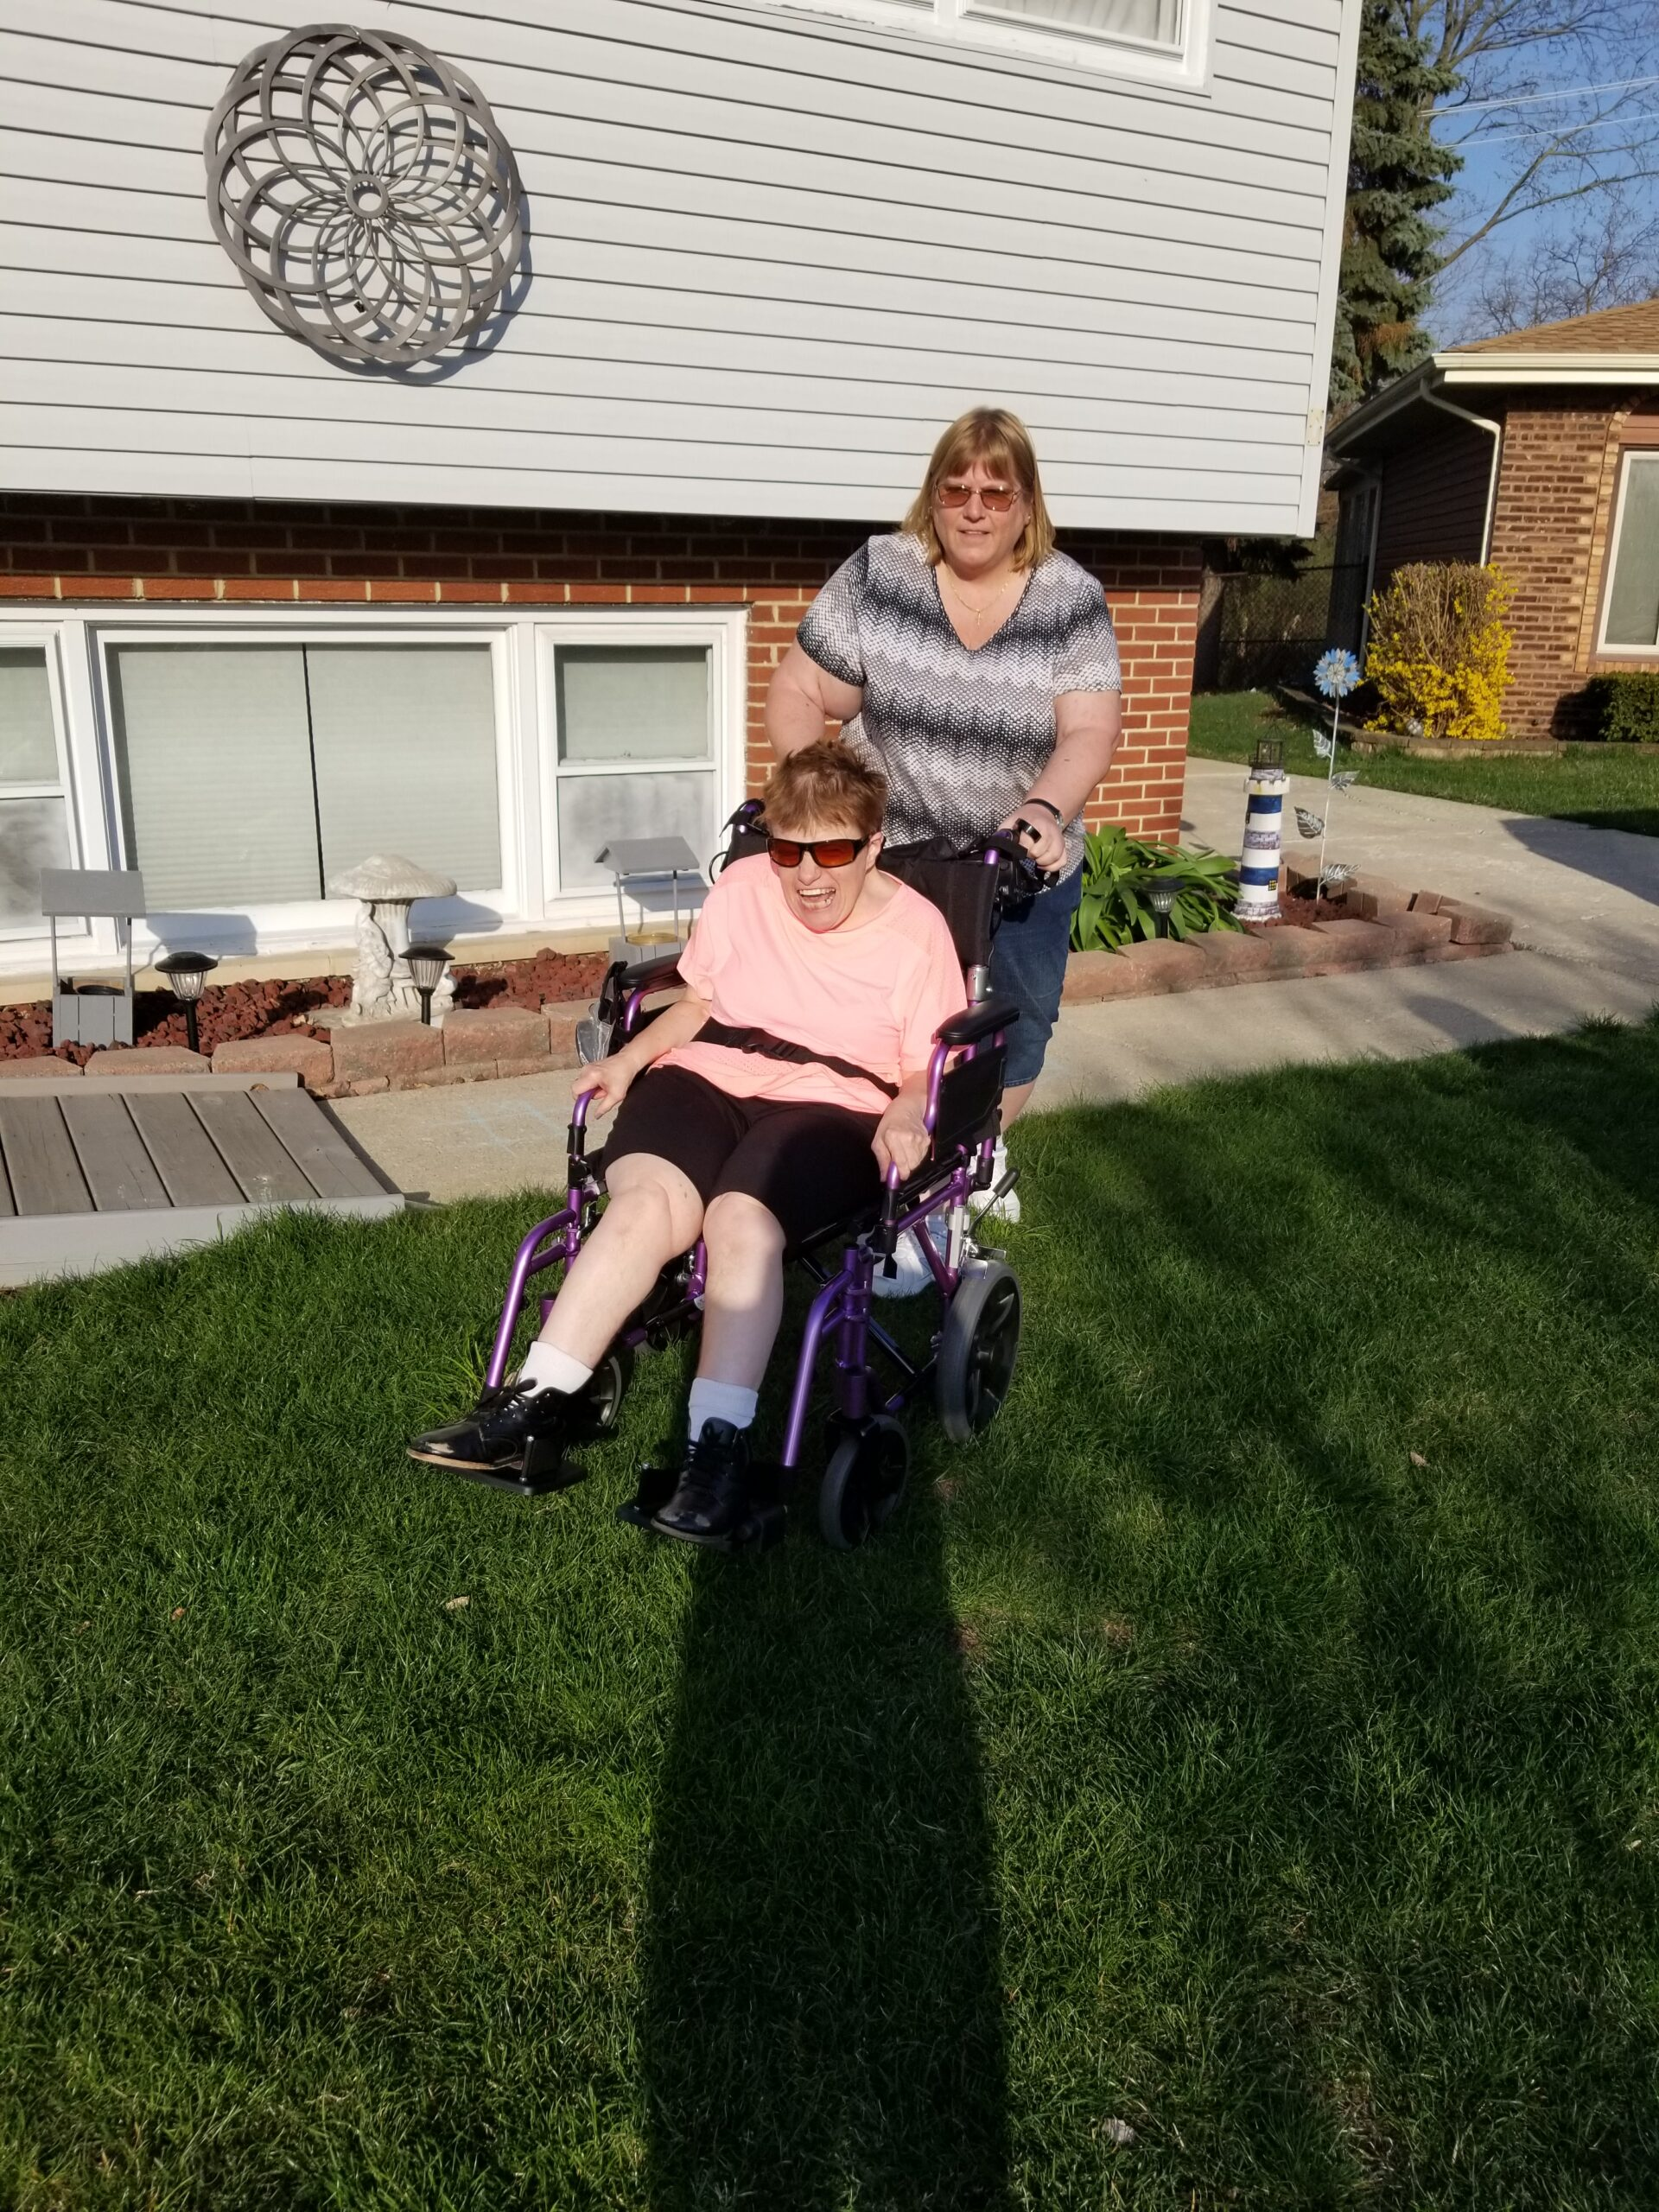 A New Wheelchair for New Adventures